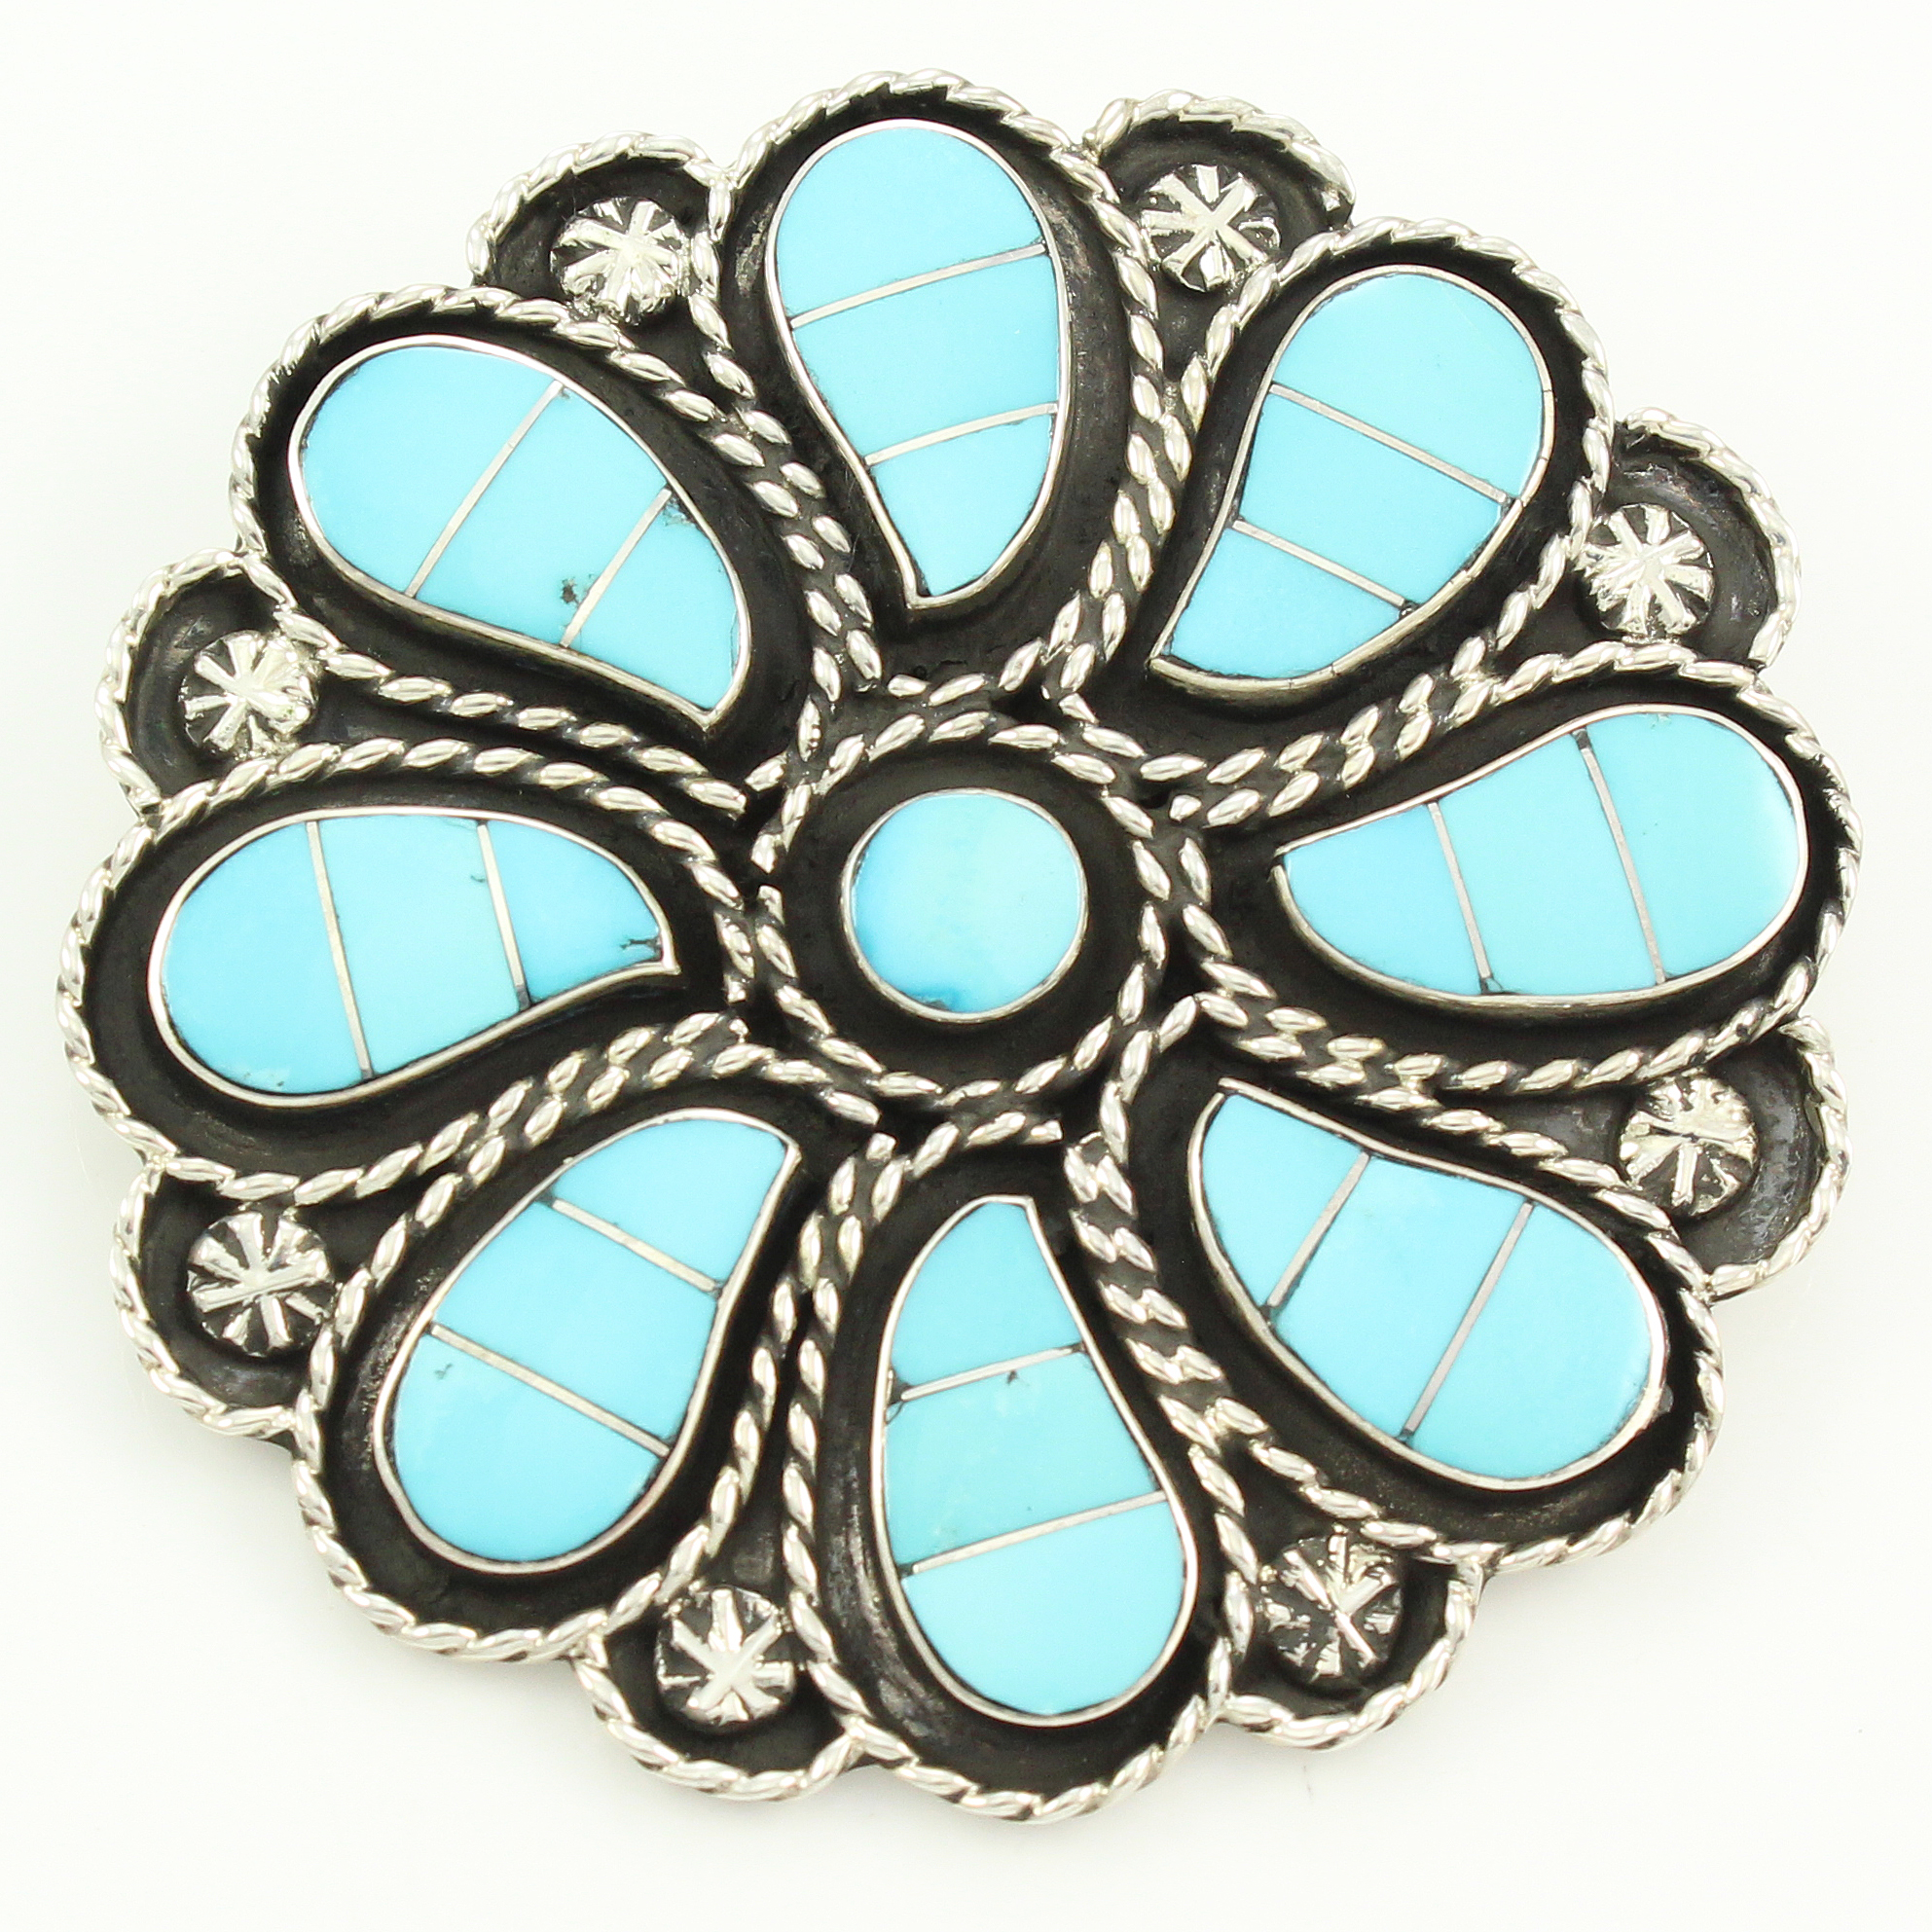 fullxfull snake pawn pendant necklace vintage cross gallery turquoise zuni eye listing photo il old